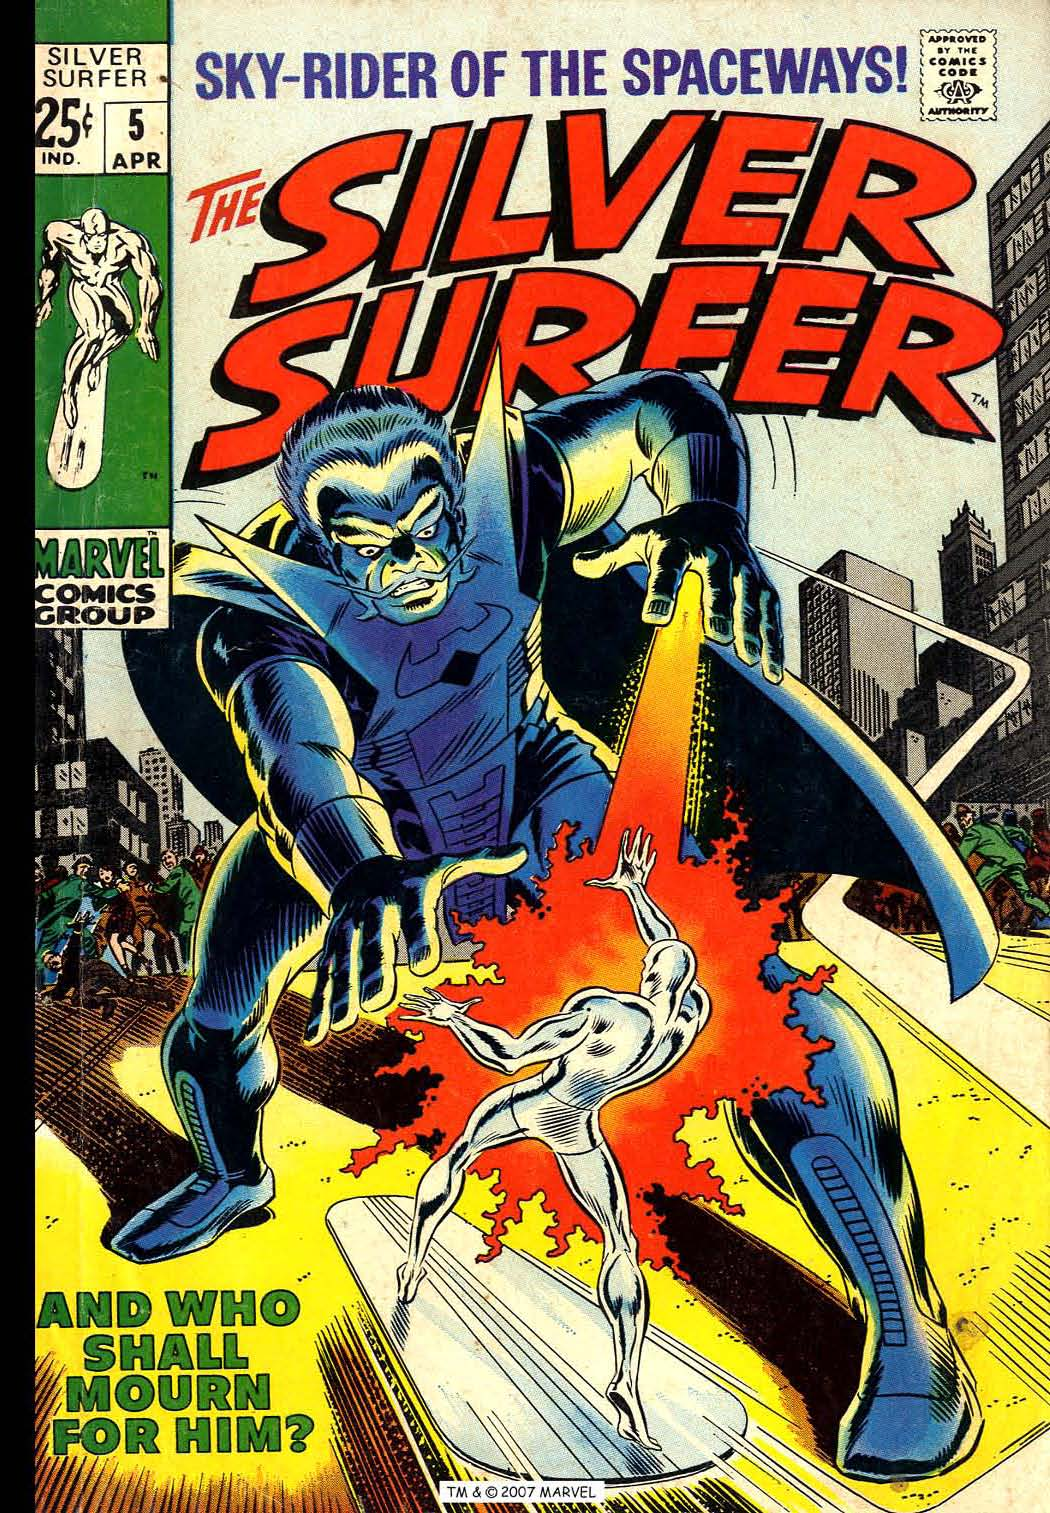 Silver Surfer (1968) issue 5 - Page 1